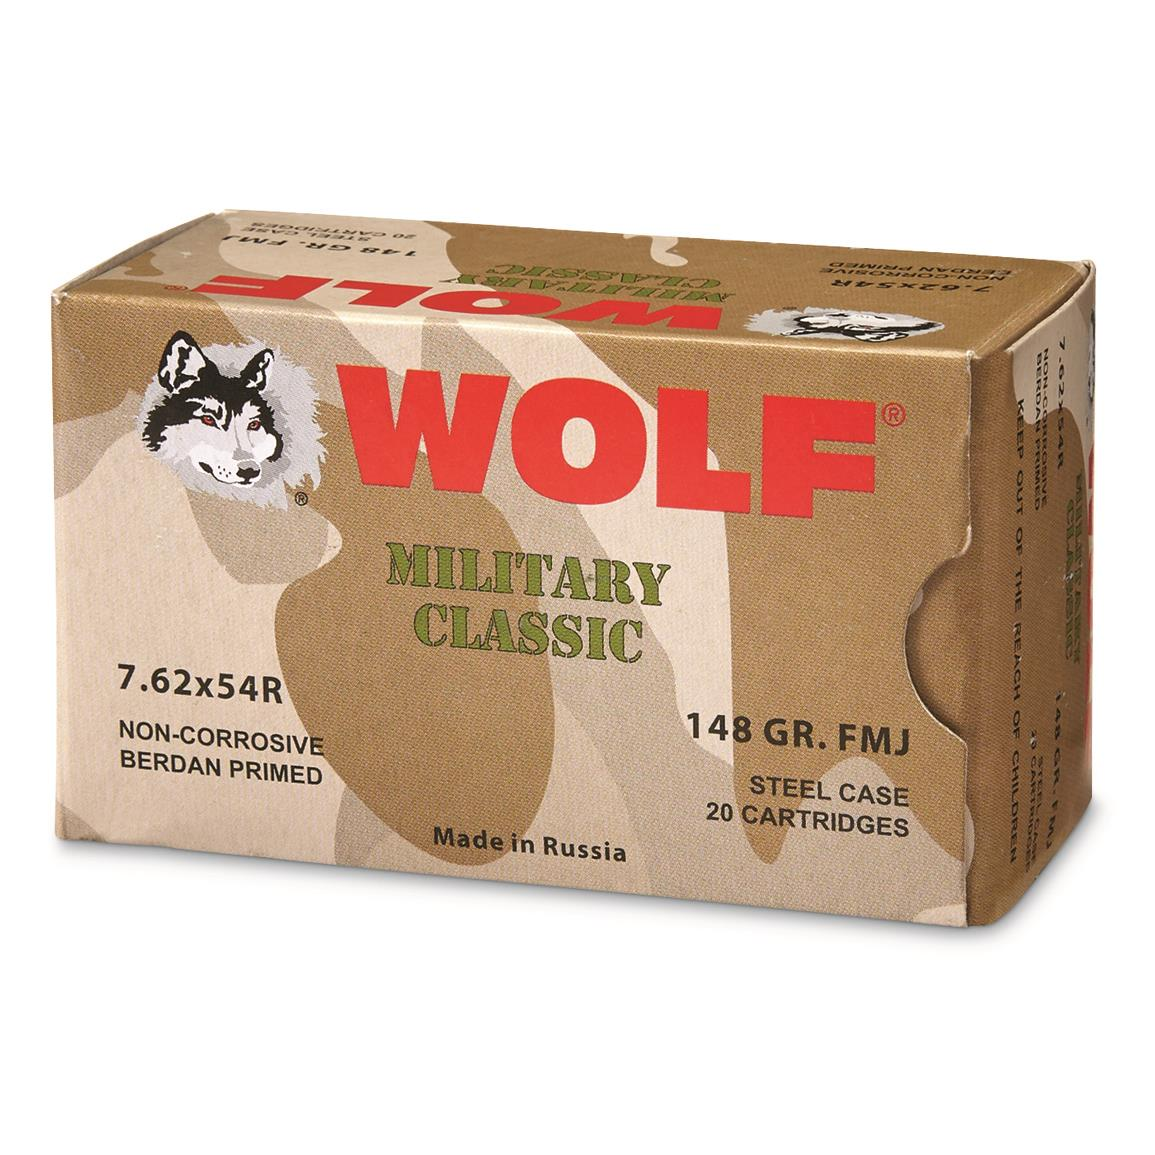 Wolf WPA Military Classic, 7.62x54R, 148 Grain, FMJ, 240 Rounds